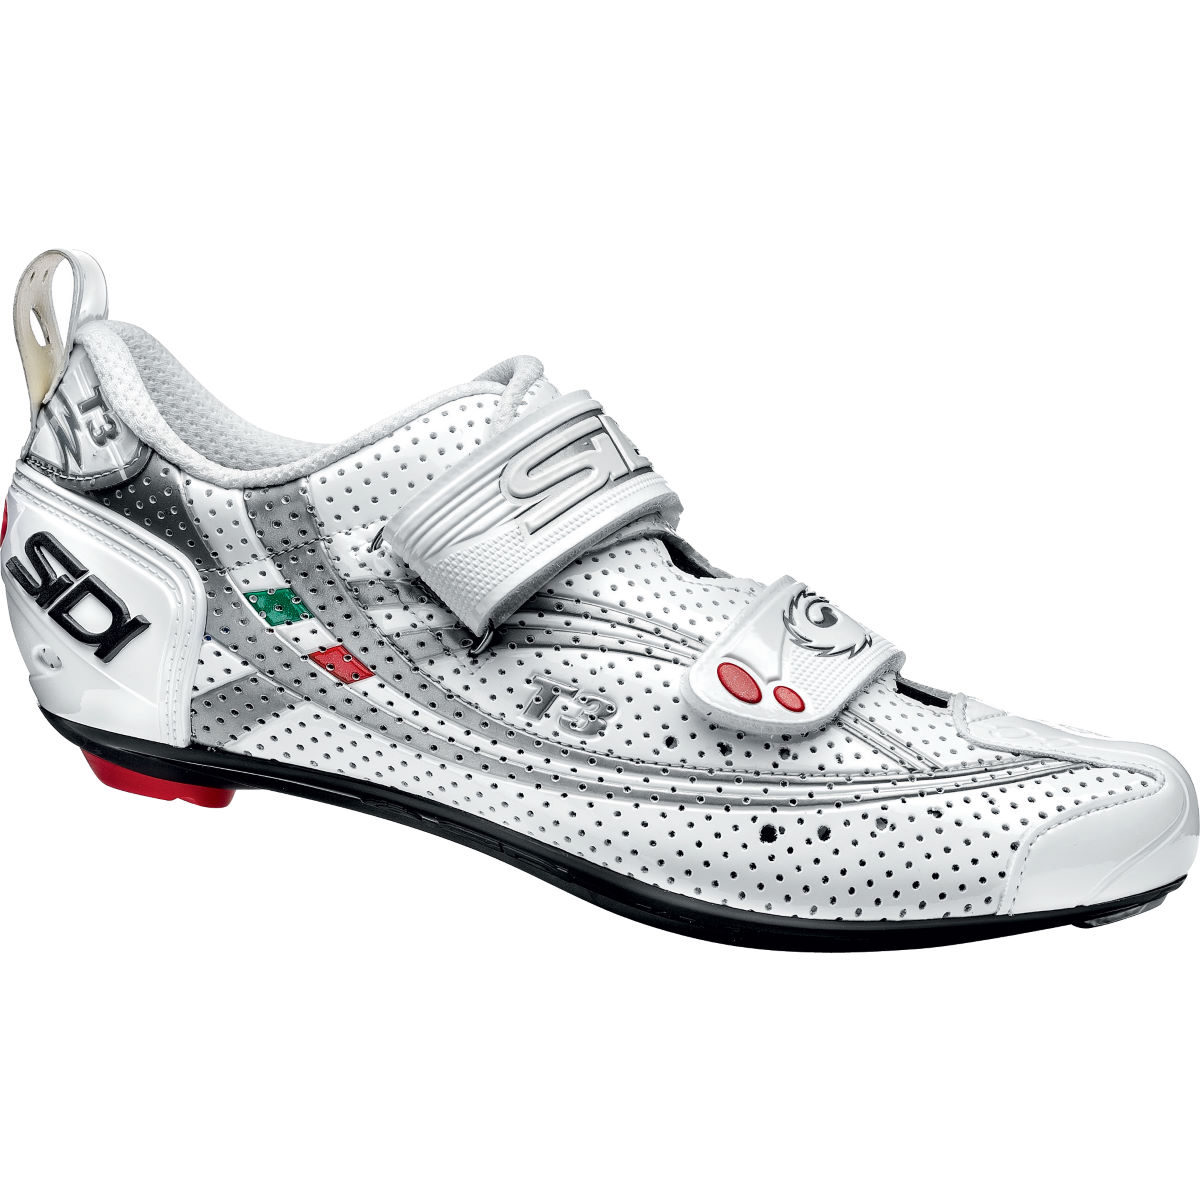 Sidi T-3 Air Carbon Composite Tri Shoe - 2015